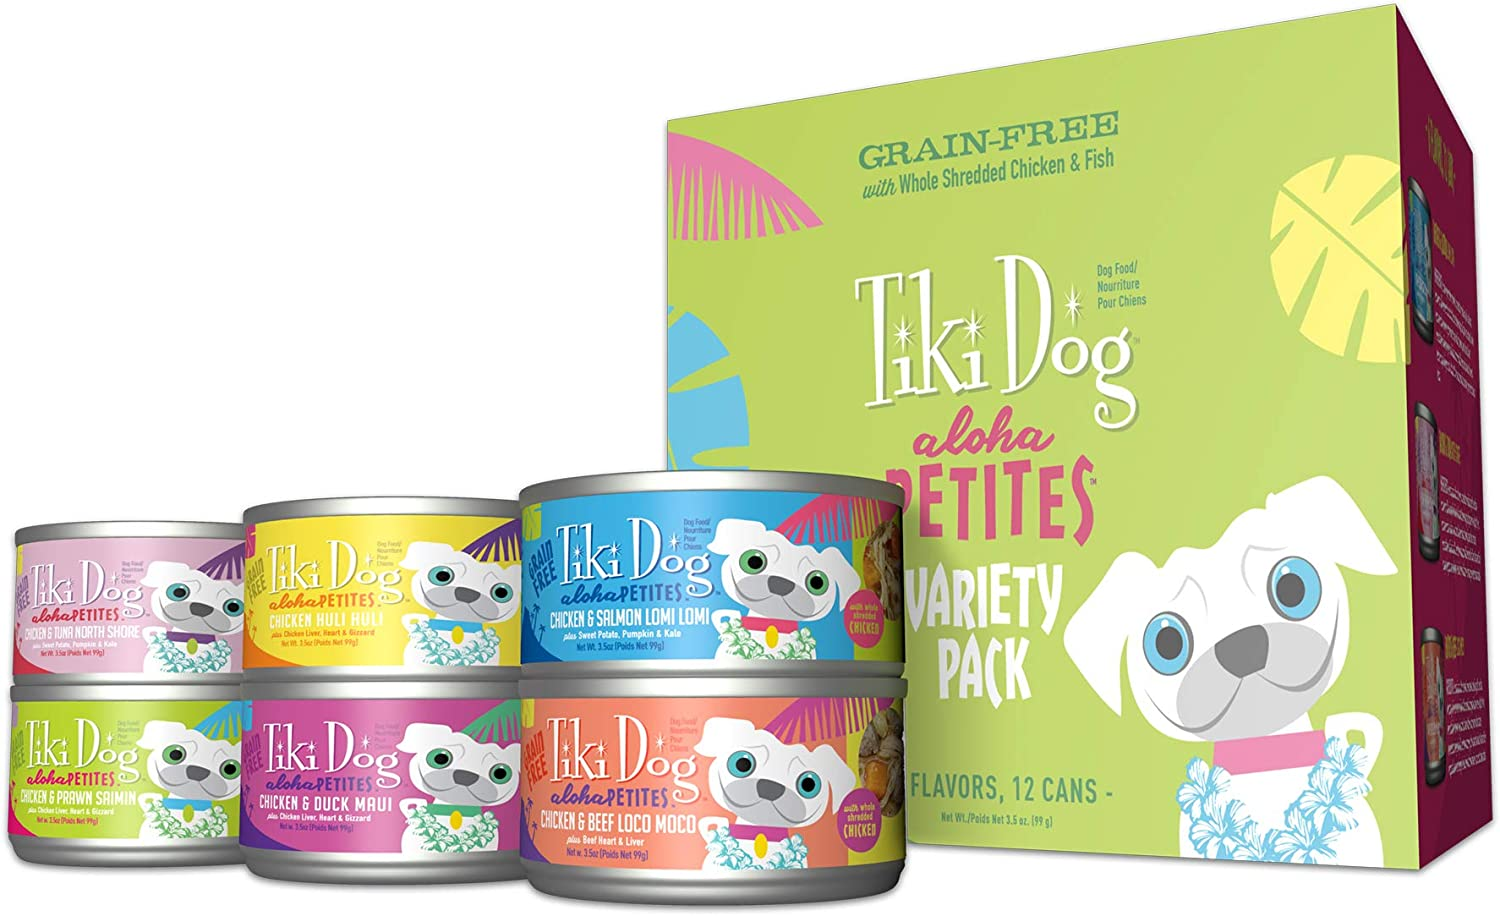 Tiki Dog Aloha Petites Gluten Grain Free Wet Food for Adult Dogs with Shredded Meat Superfoods